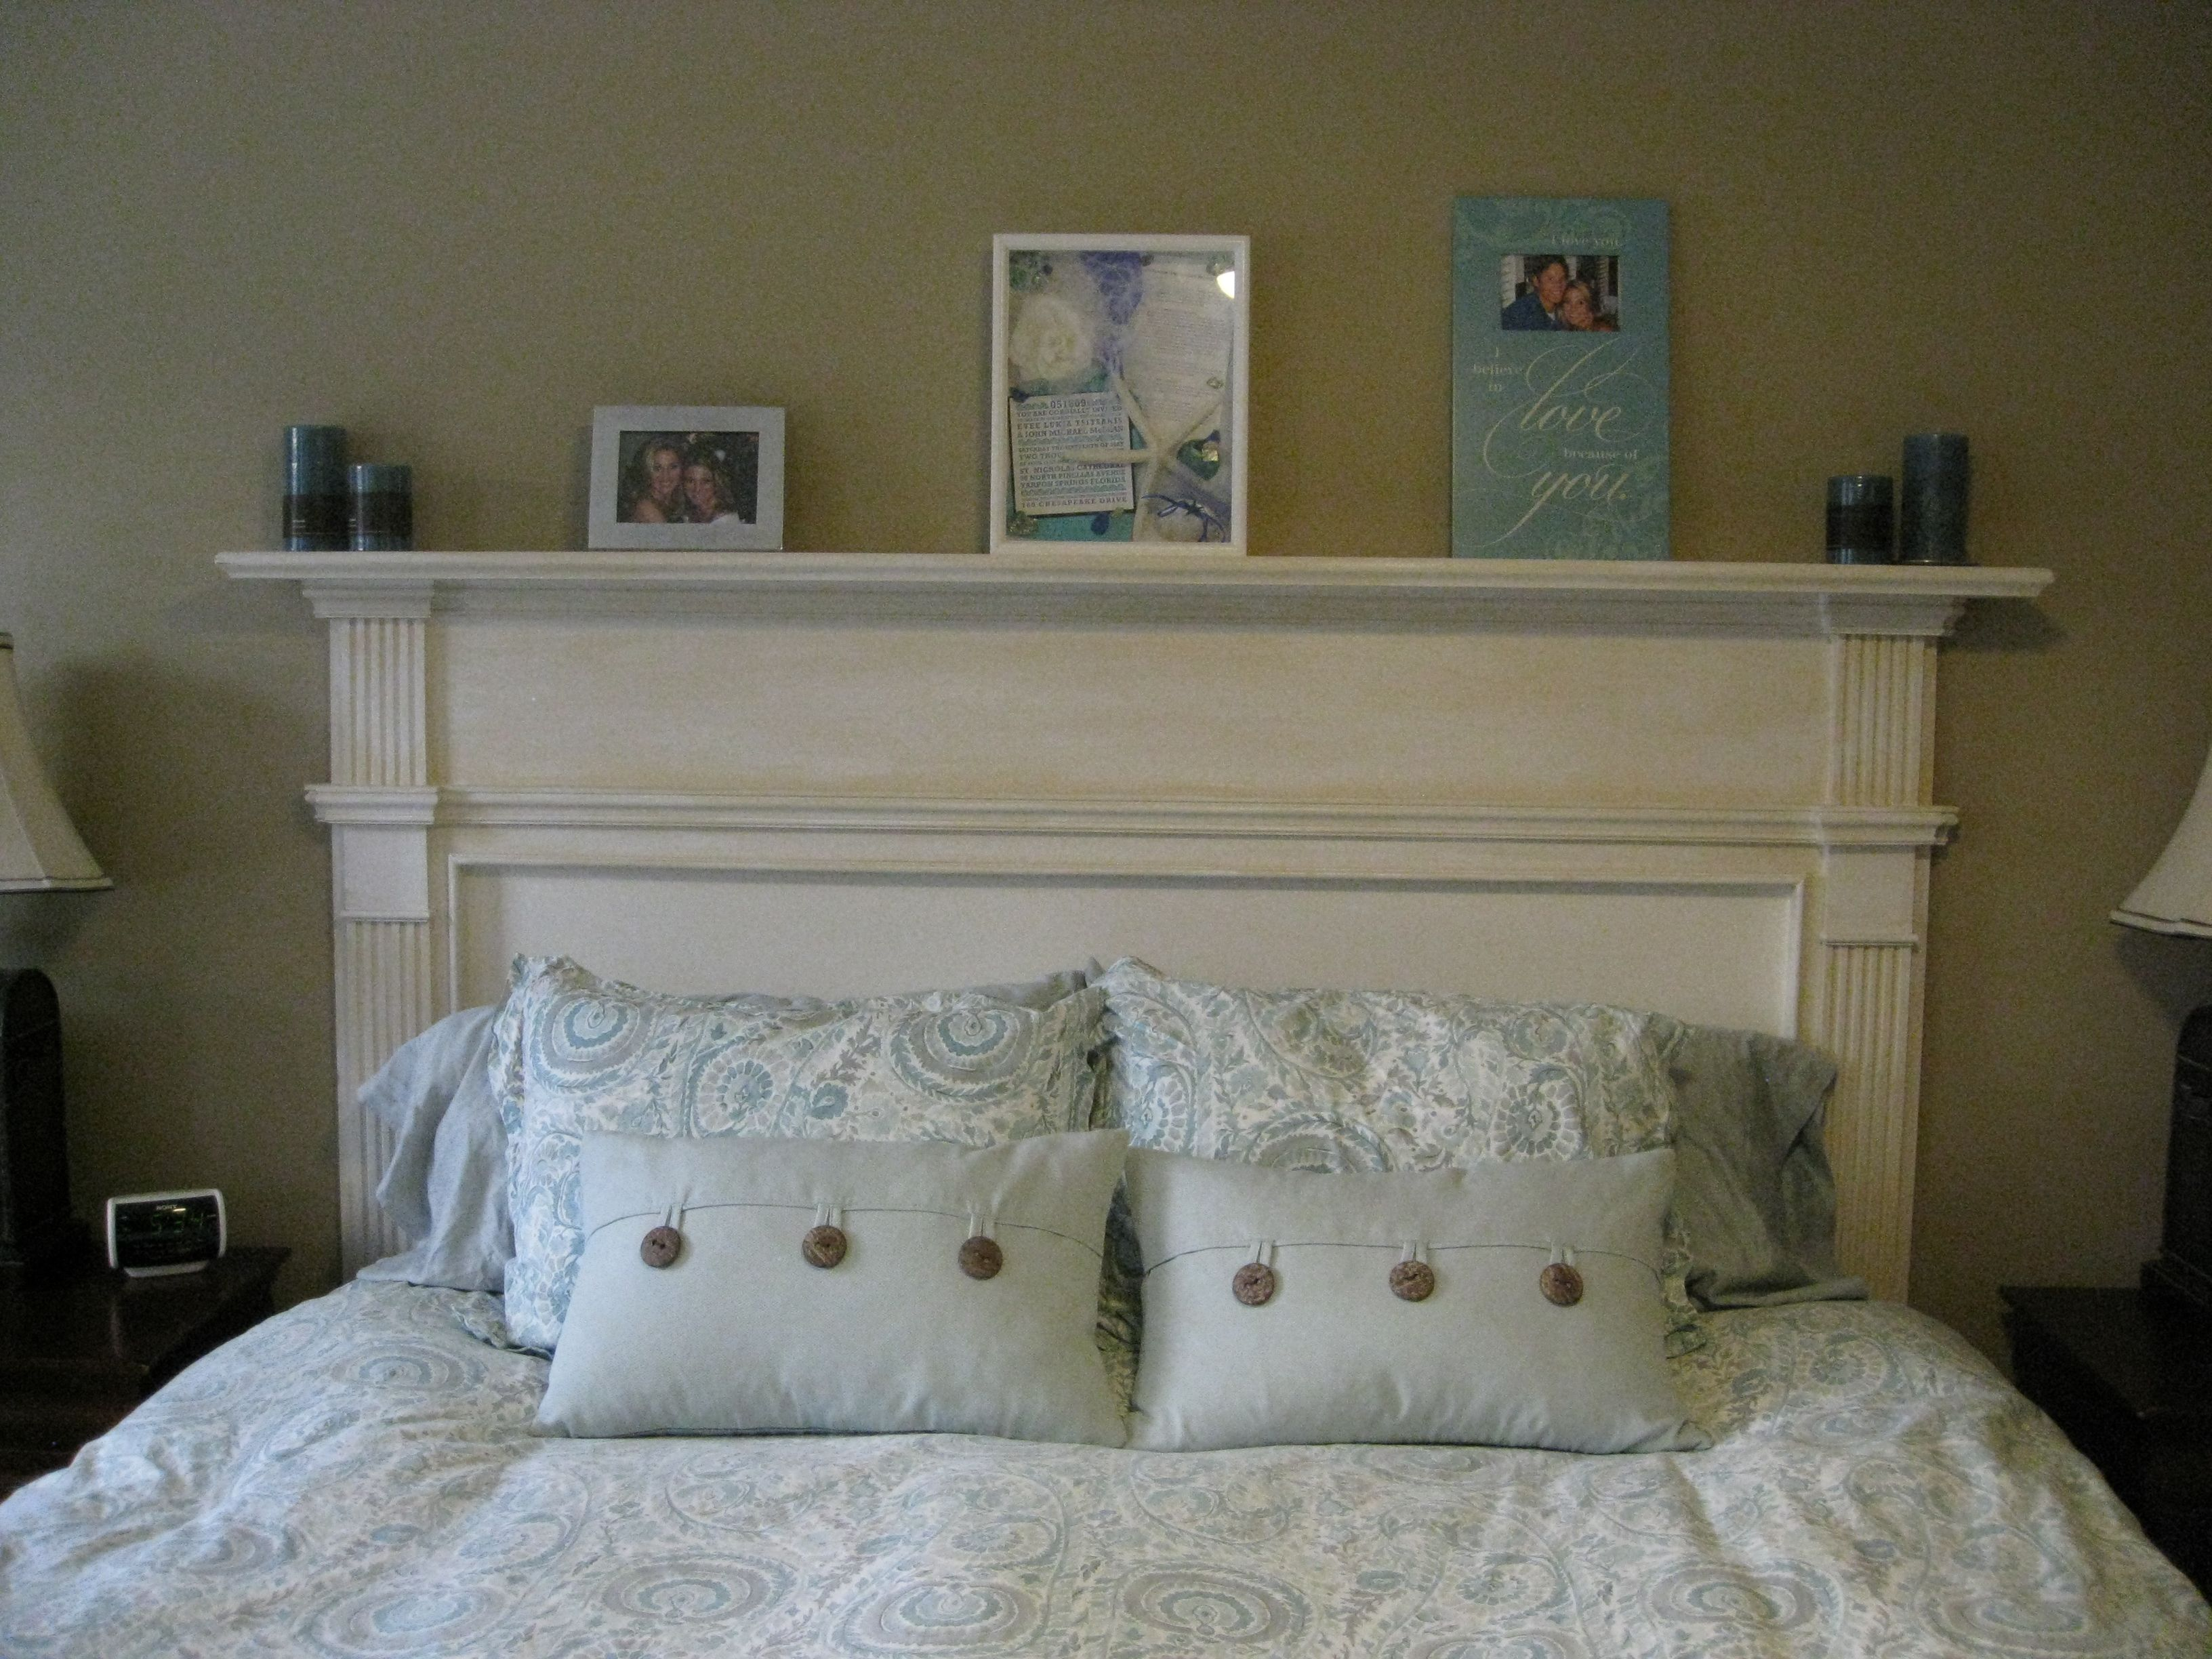 Old Bedroom Fireplace Ideas I Made An Old Fireplace Mantle Into Our Headboard In The